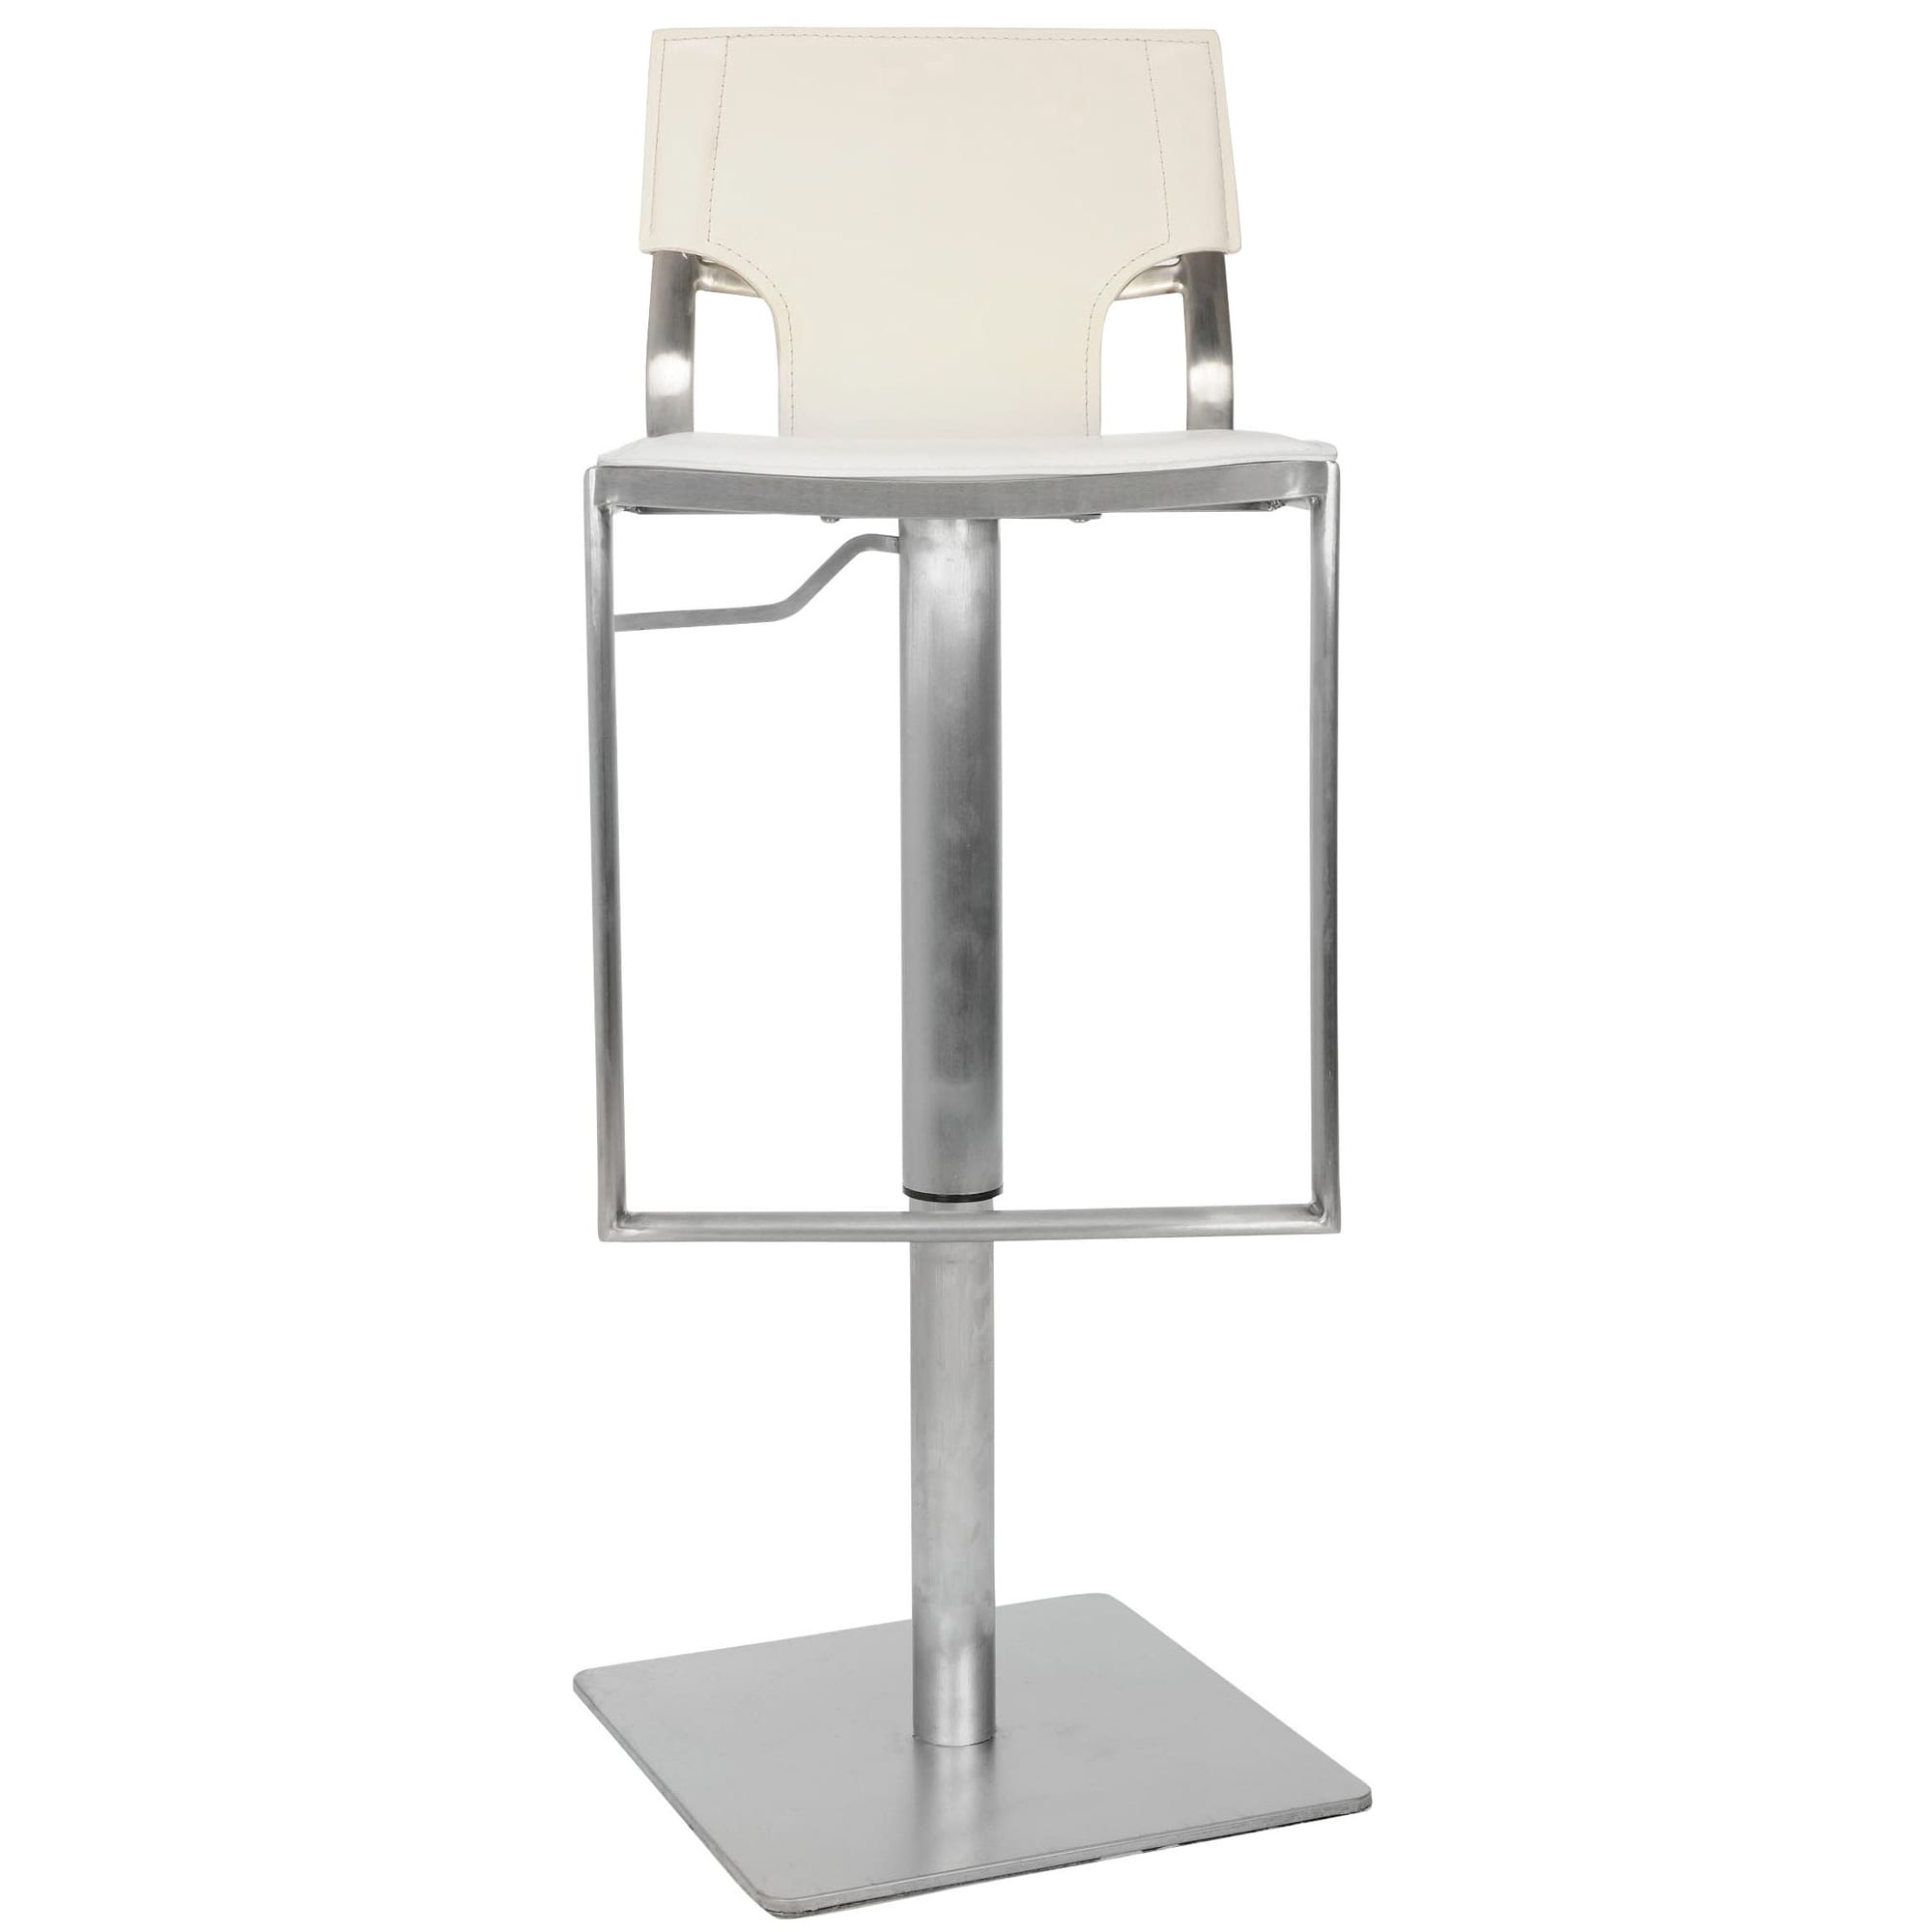 Awesome Safavieh Armondo White Leather Seat Stainless Steel Adjustable 22 32 Inch Modern Bar Stool 16 5 X 16 1 X 33 5 Lamtechconsult Wood Chair Design Ideas Lamtechconsultcom